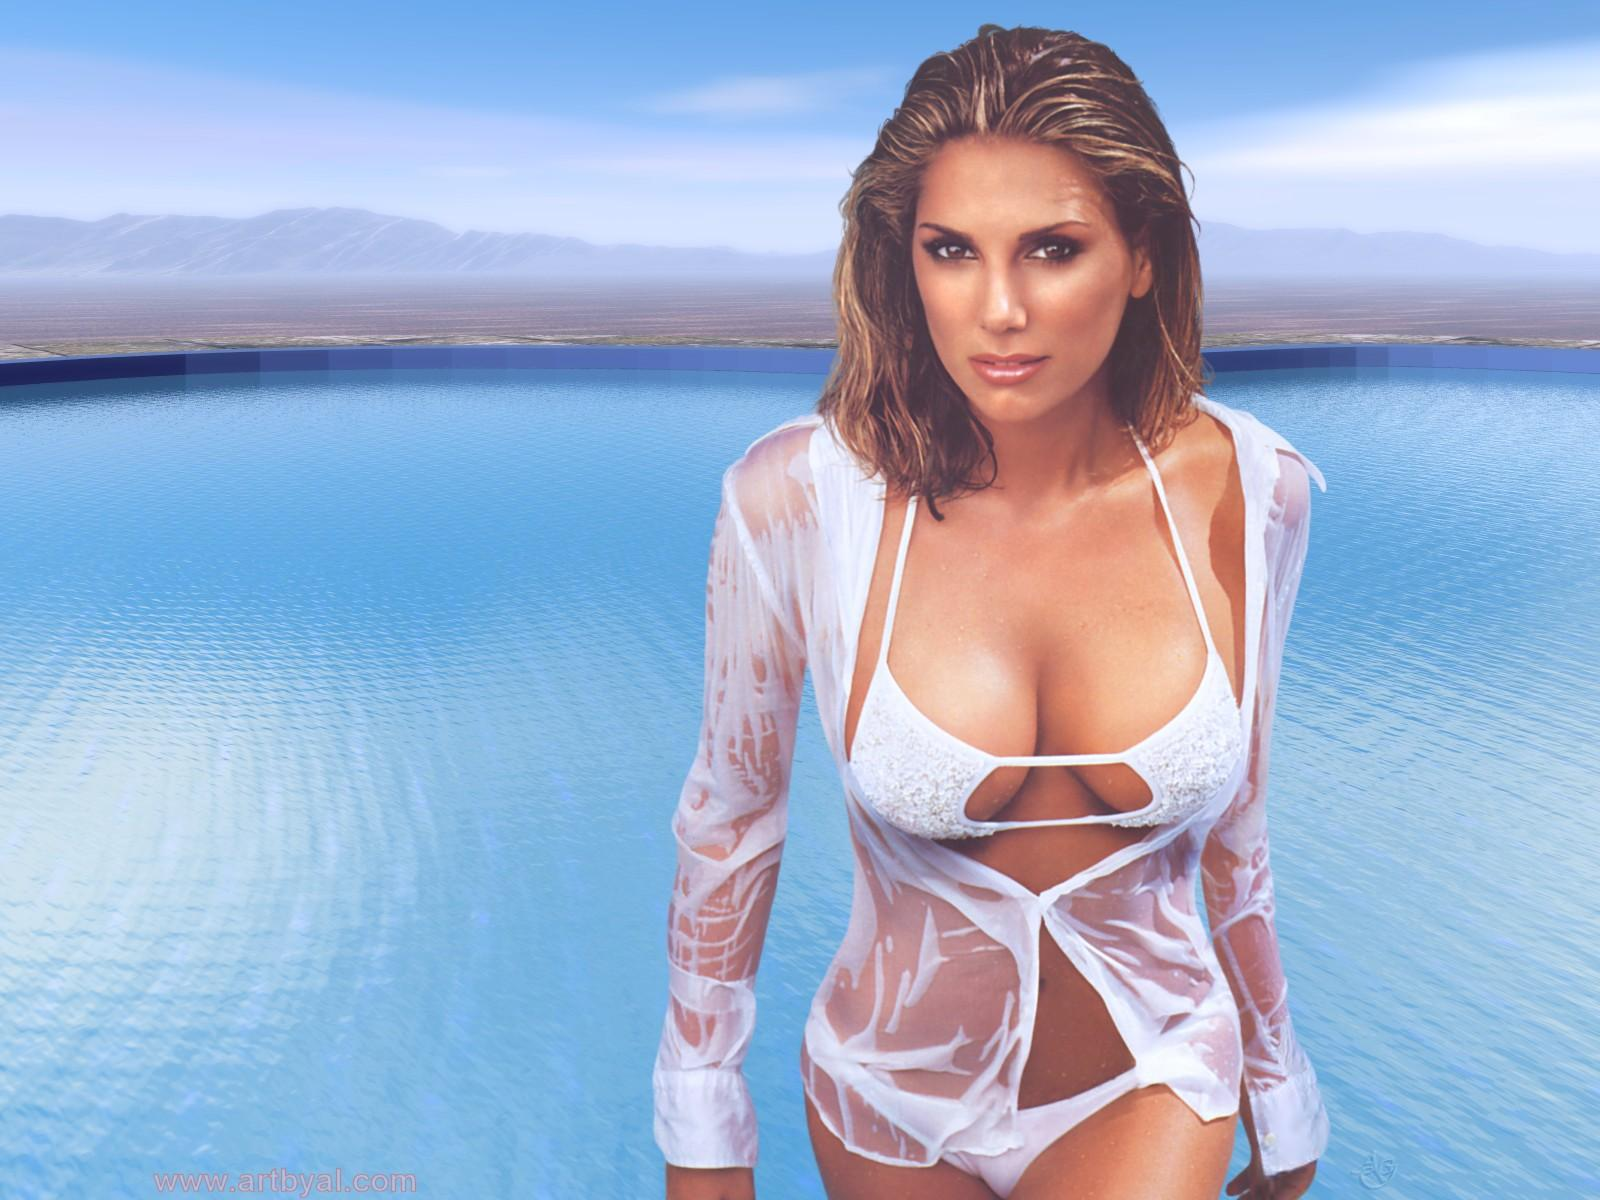 1600x1200 - Daisy Fuentes Wallpapers 28